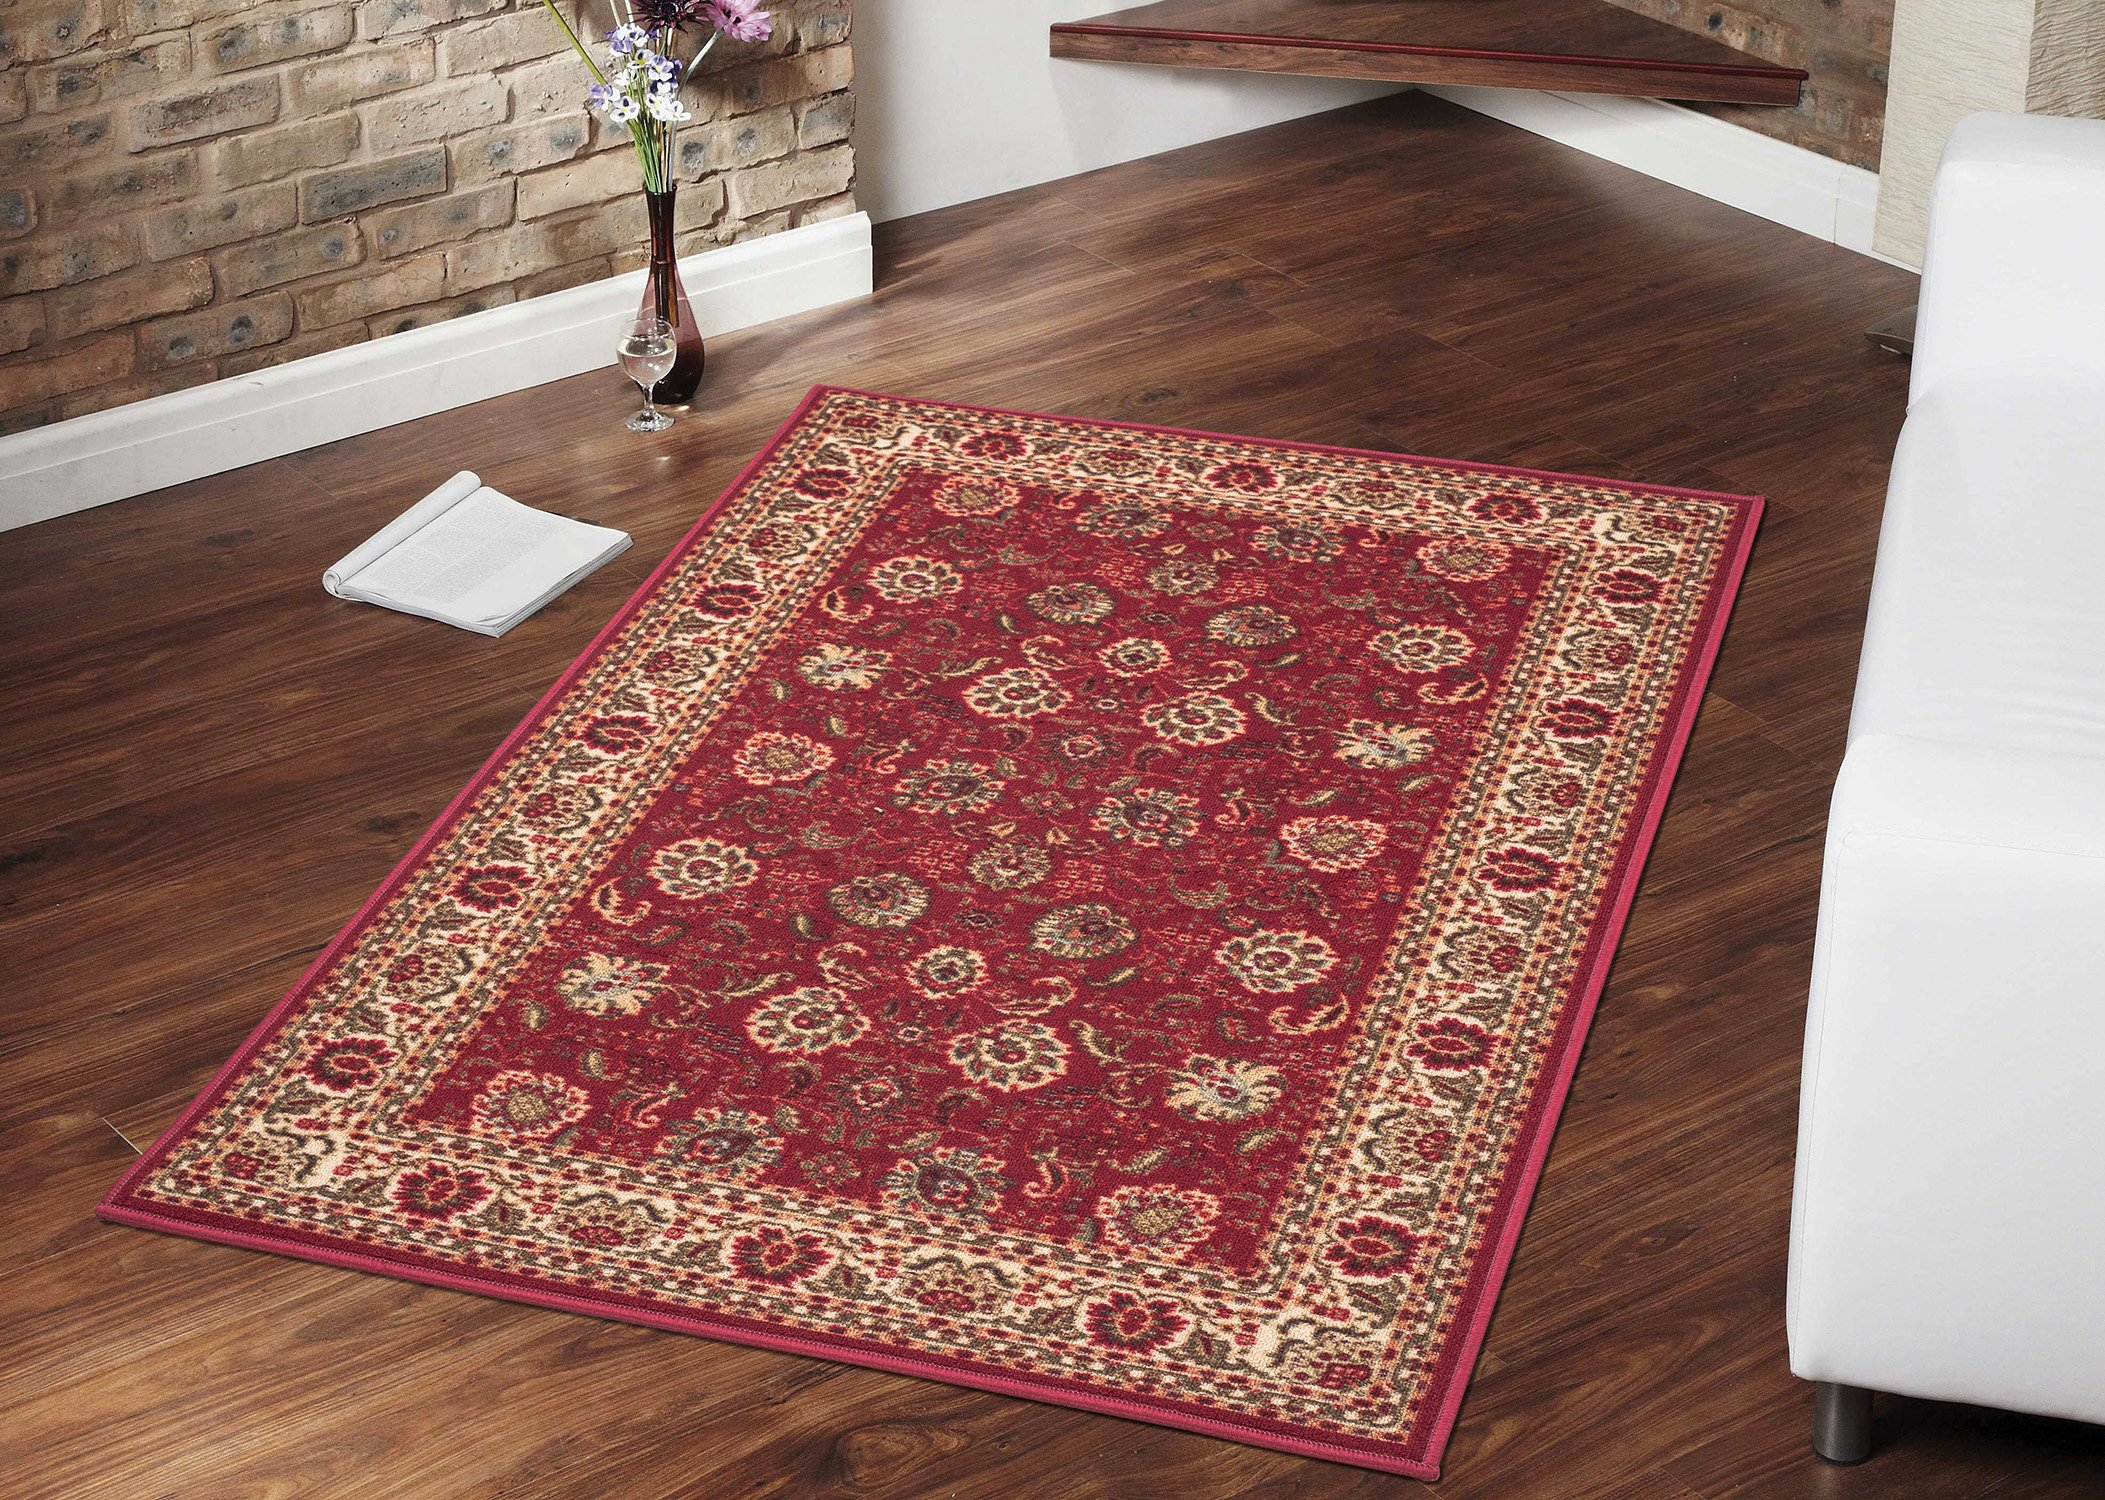 Ottomanson Ottohome Collection Traditional Persian Oriental Design Non-Slip Area Rug, 8'2'' X 9'10'', Red by Ottomanson